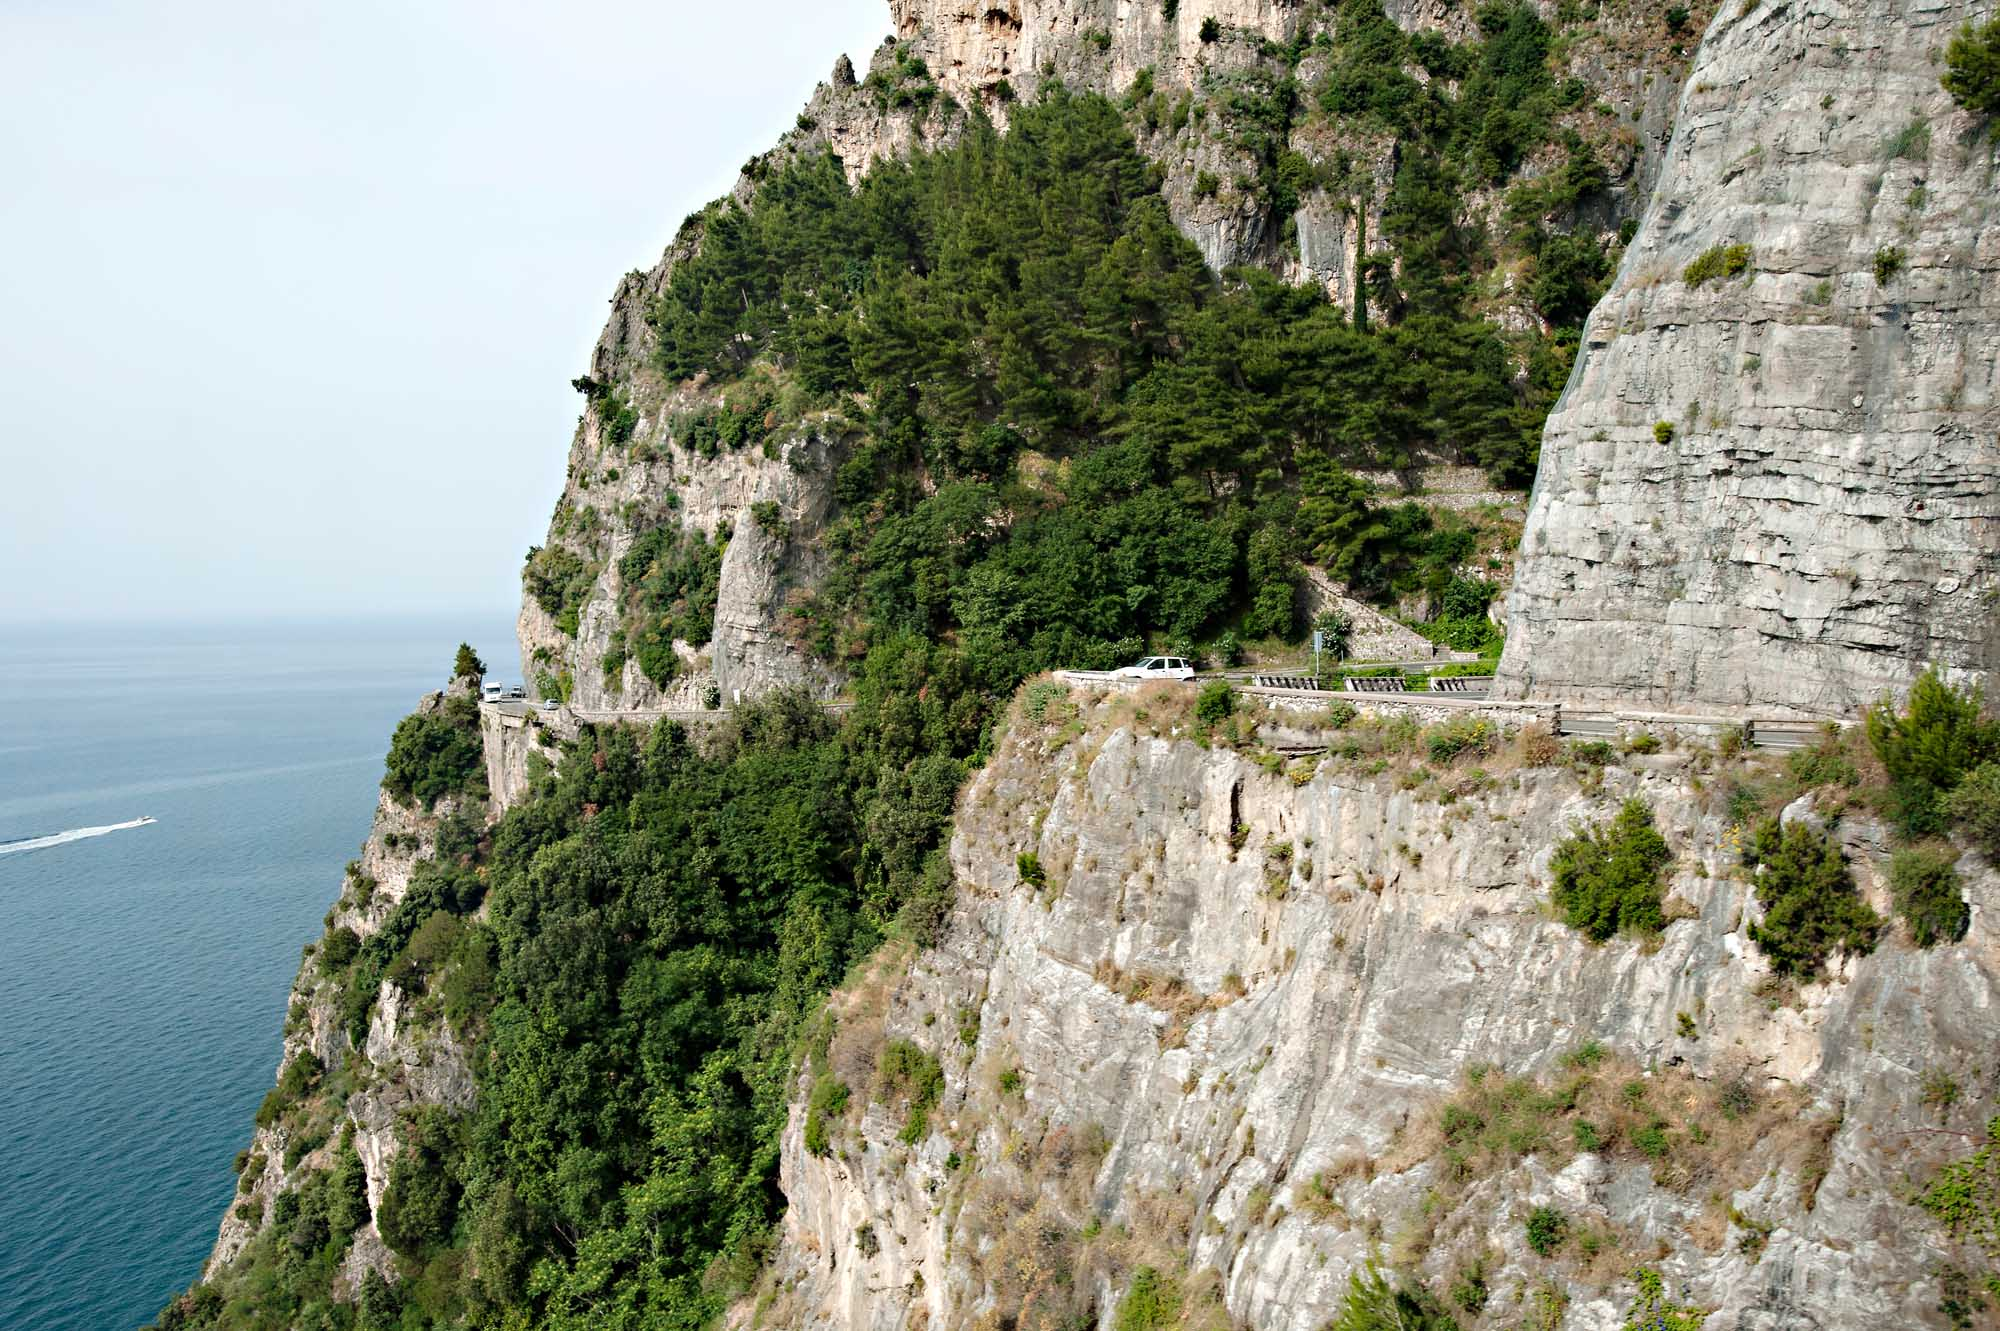 Italy's stunning Amalfi Coast is listed as a UNESCO World Heritage Site for its cultural landscape.